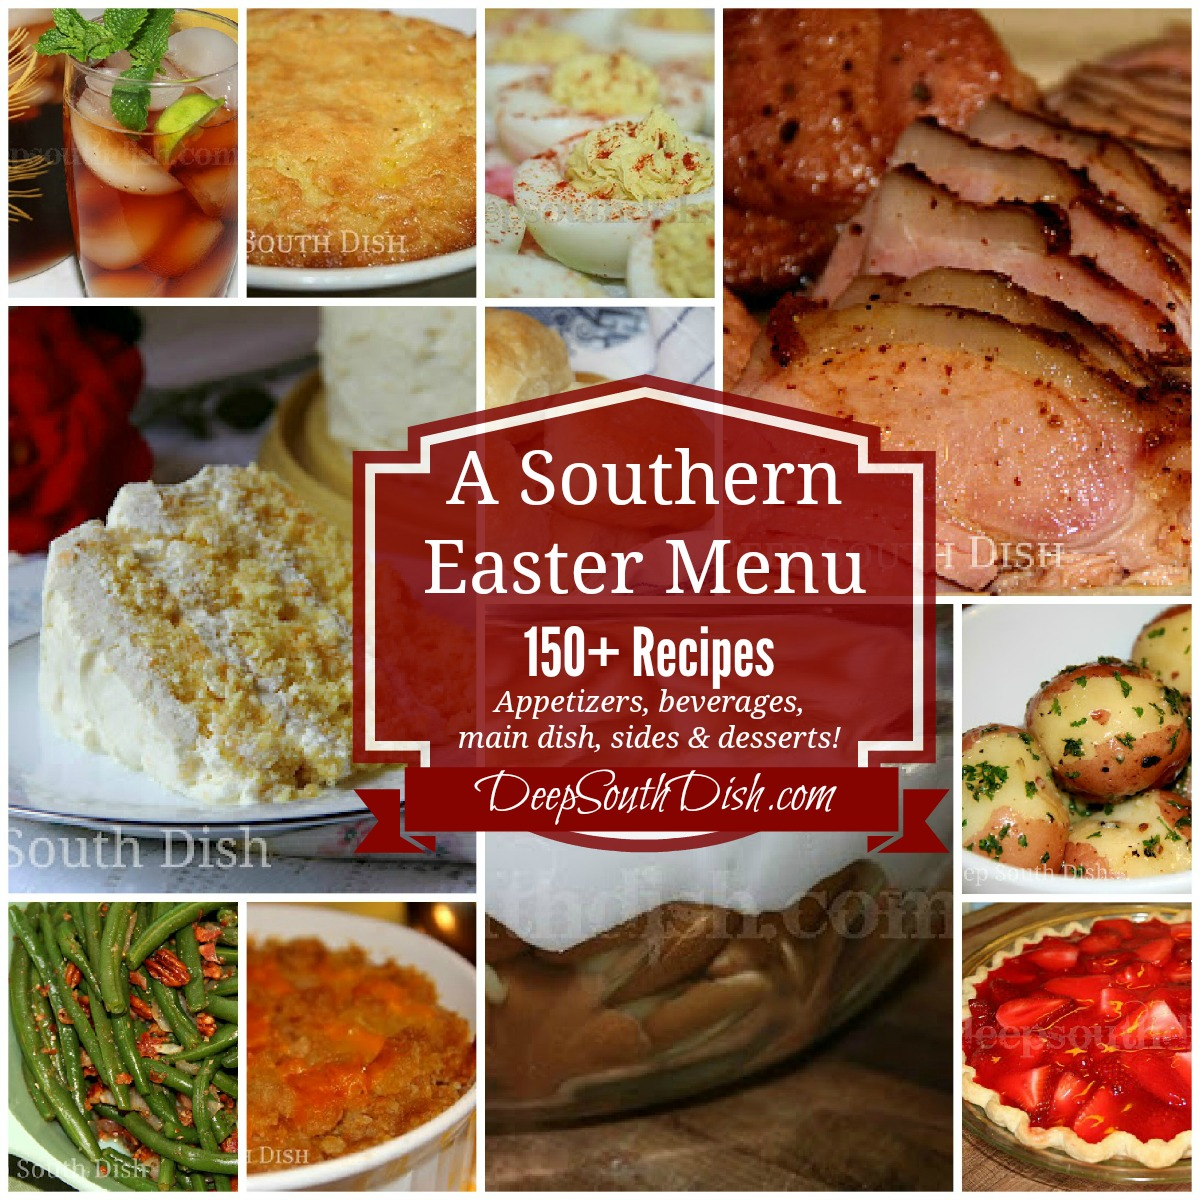 Amazing Southern Cuisine Menu Ideas